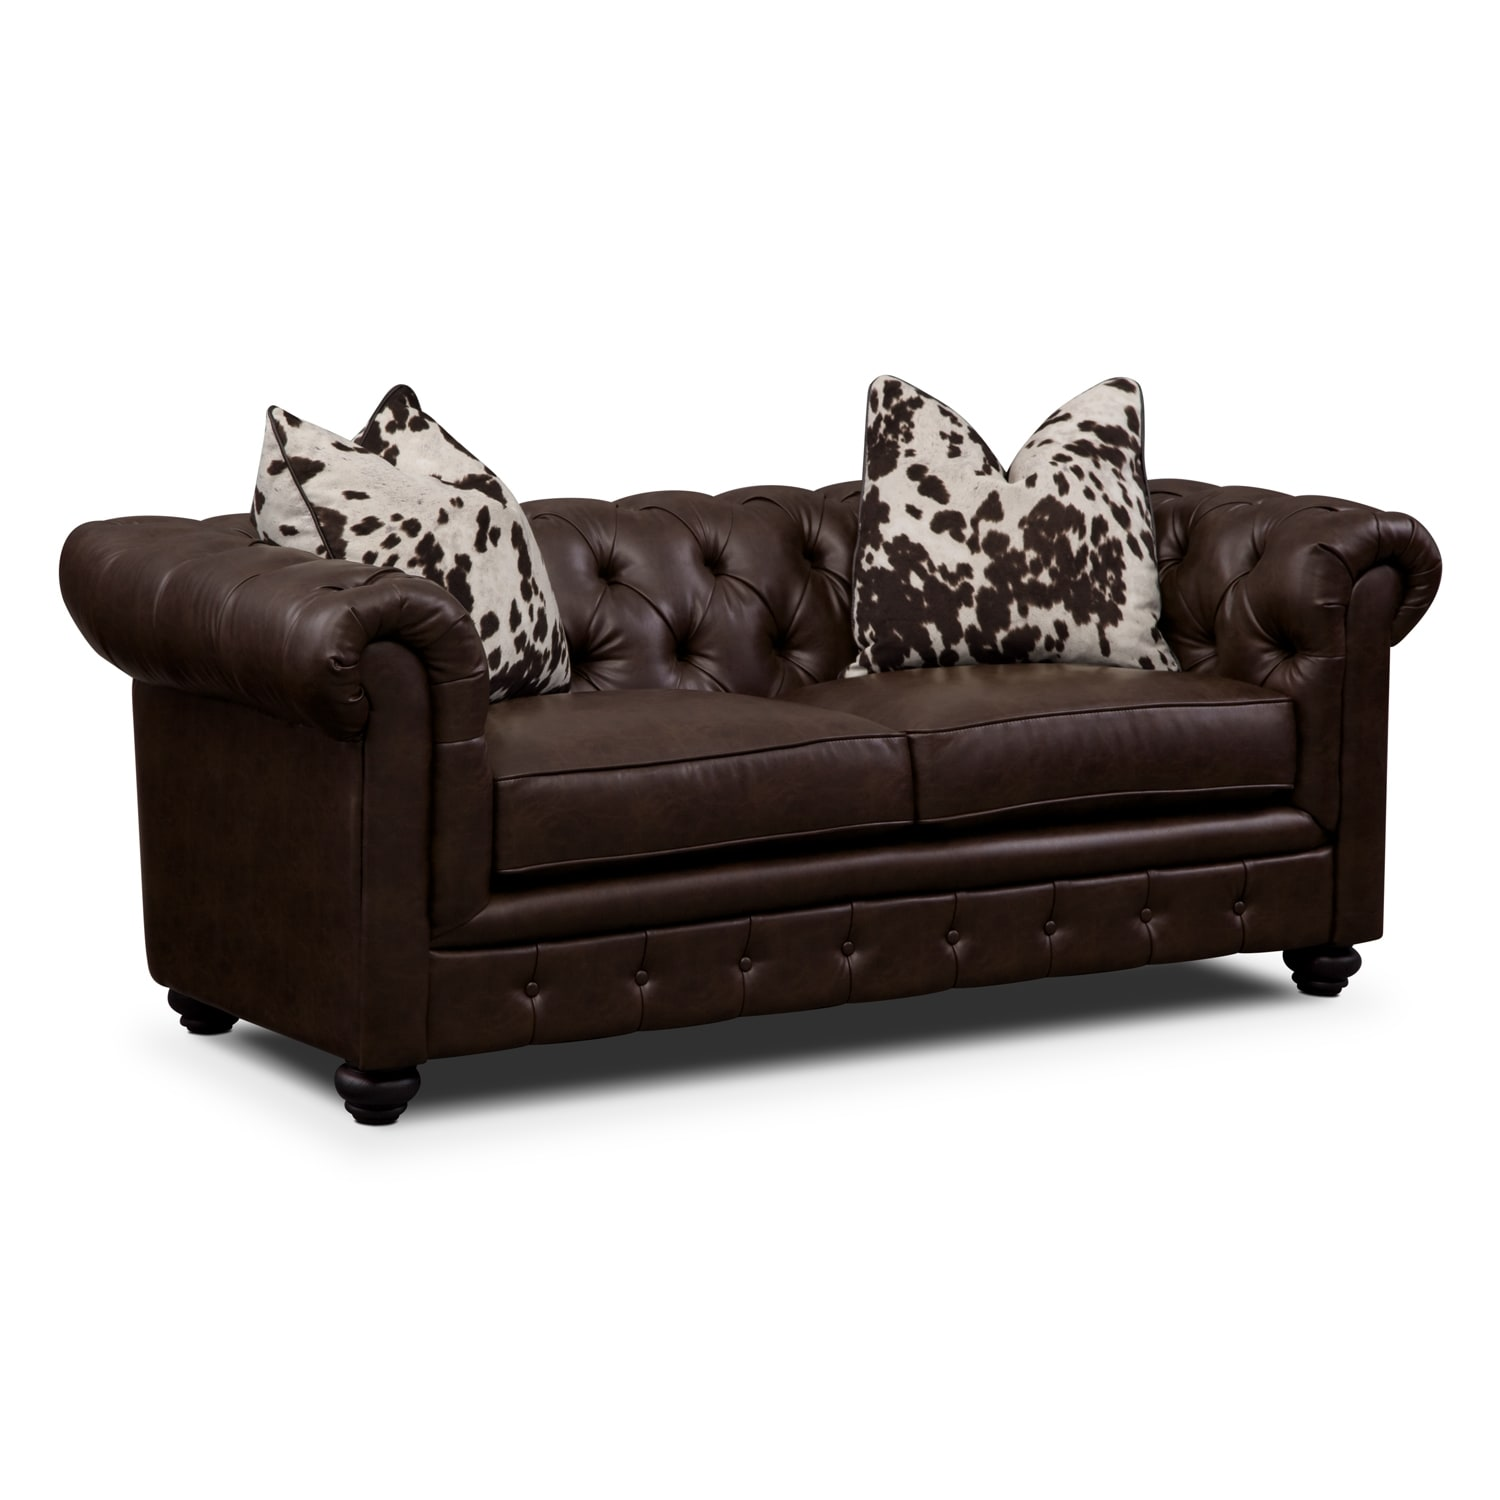 Madeline Ii Leather Apartment Sofa Value City Furniture